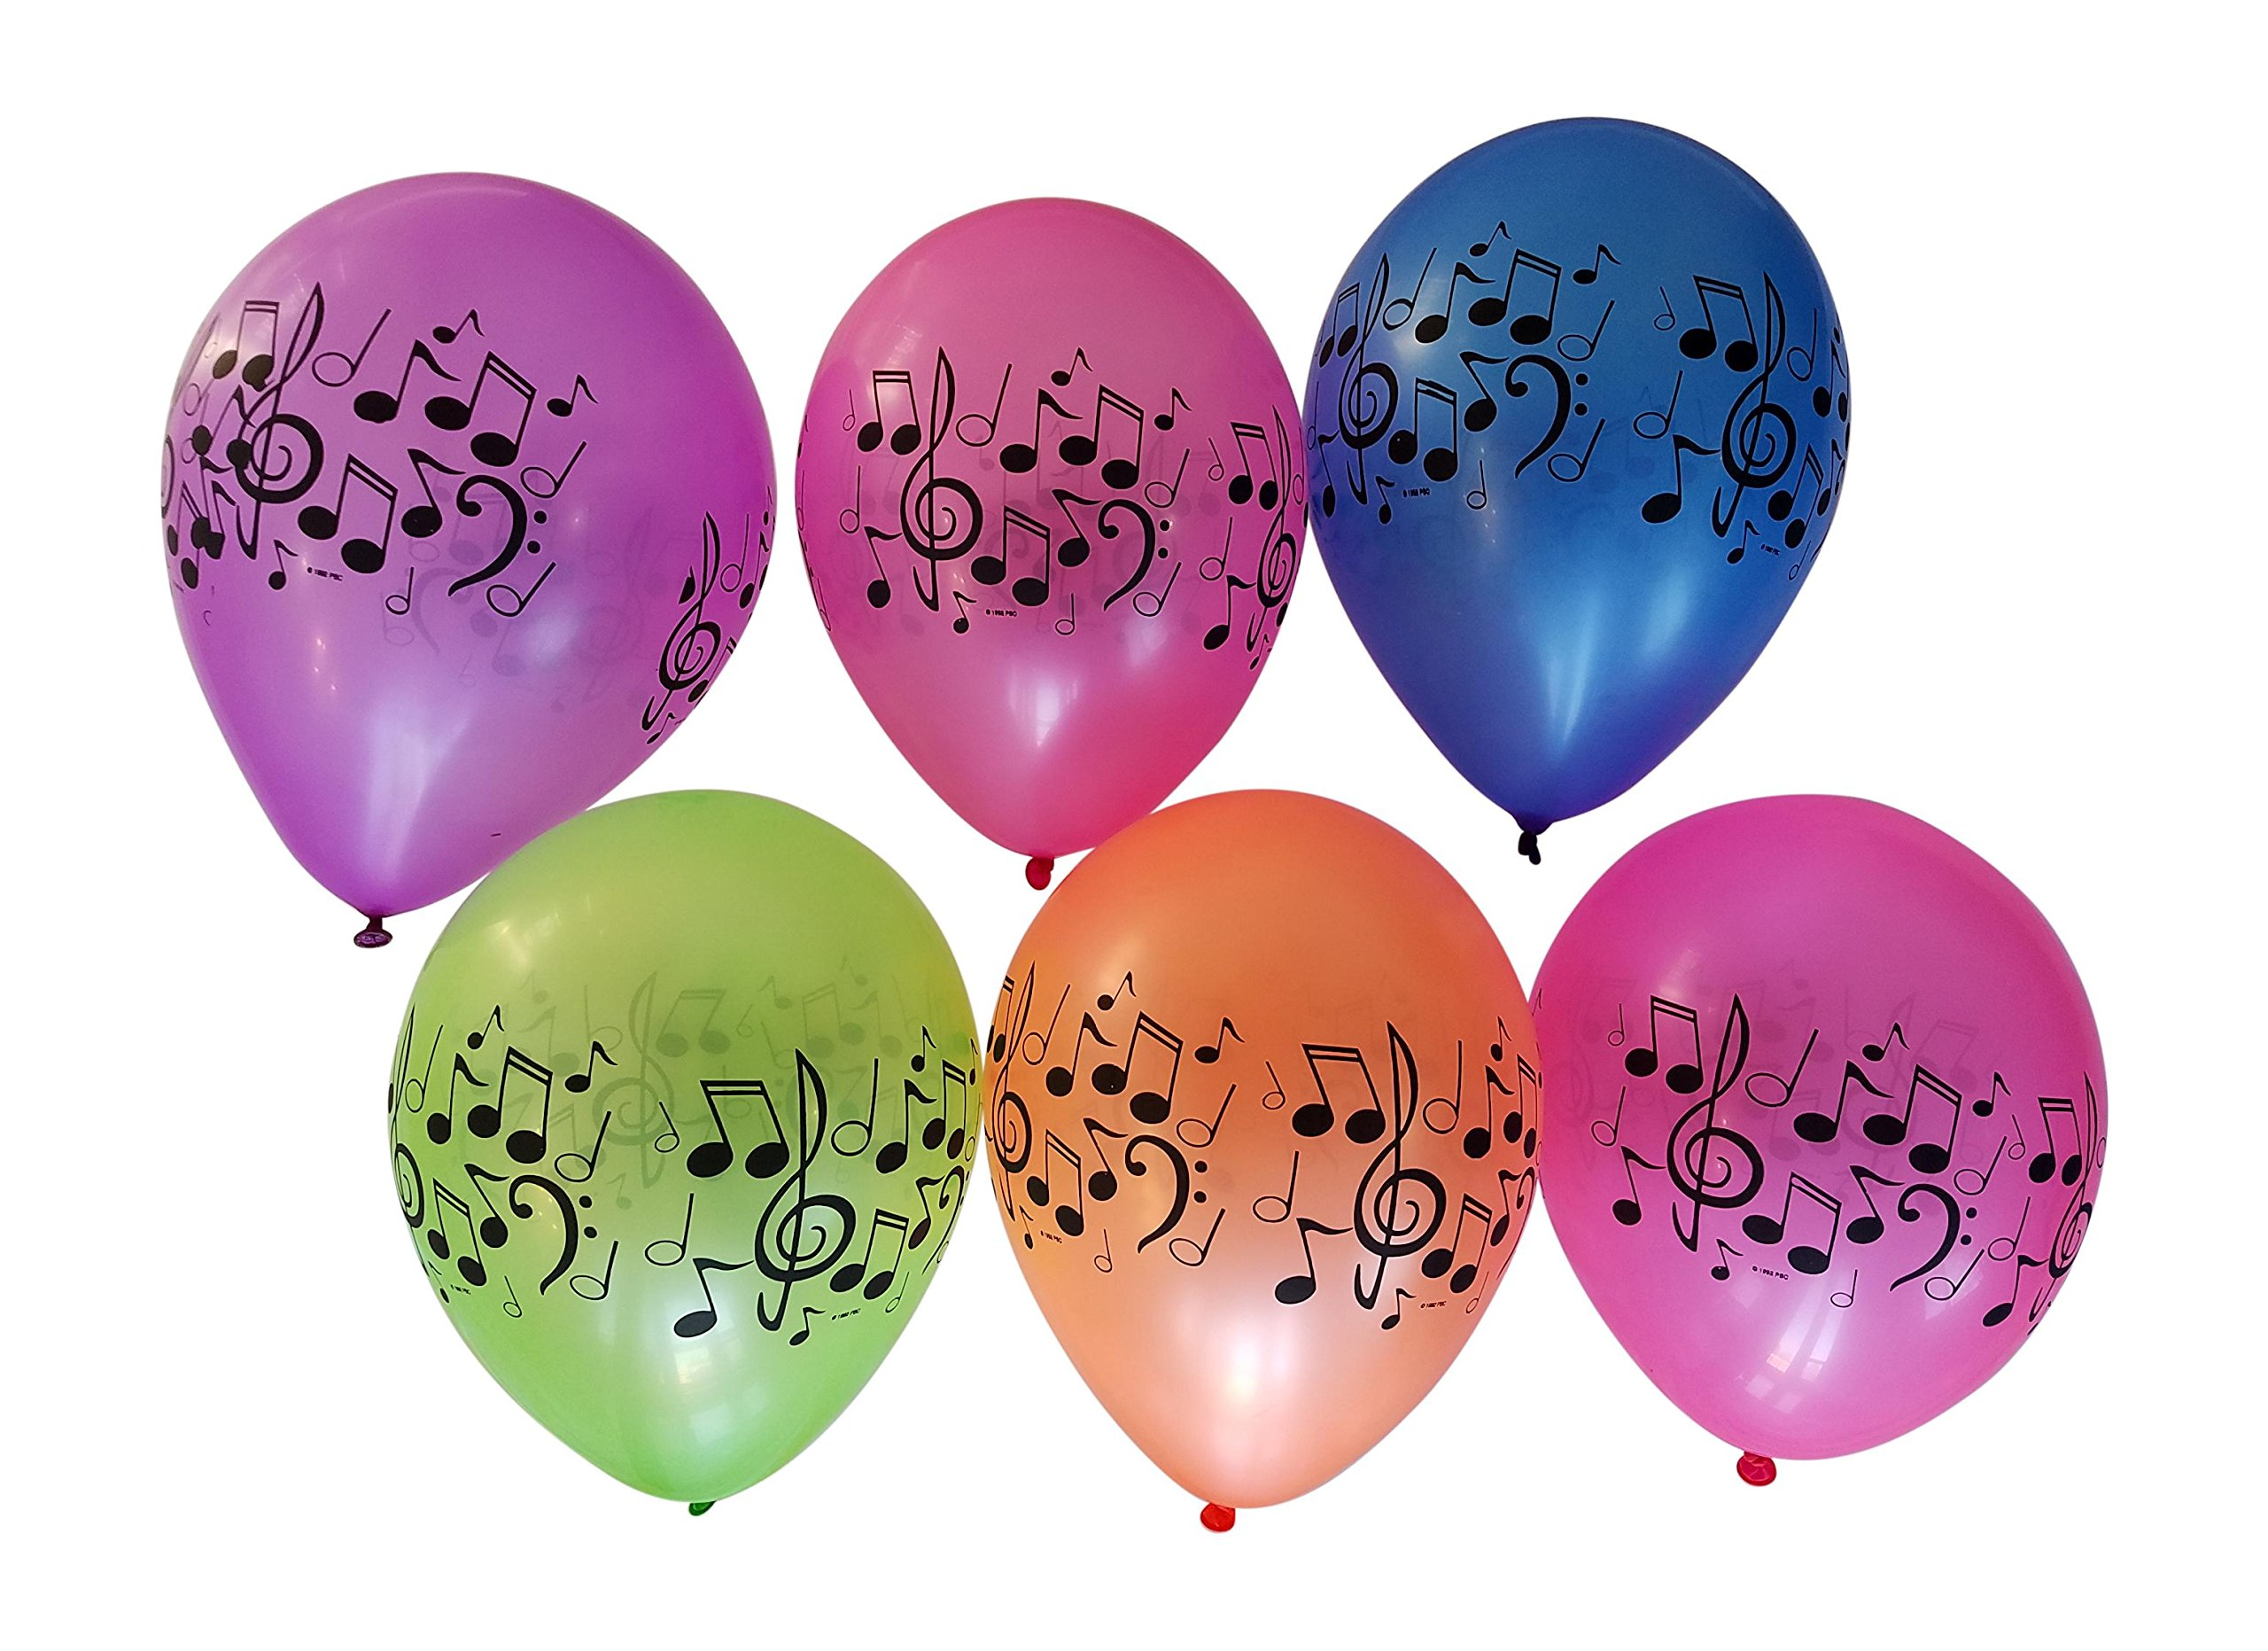 Music Balloons with Notes for Band, Choir, or Music Birthday Party - 25 Assorted Neon Colors - 11 Latex Balloons